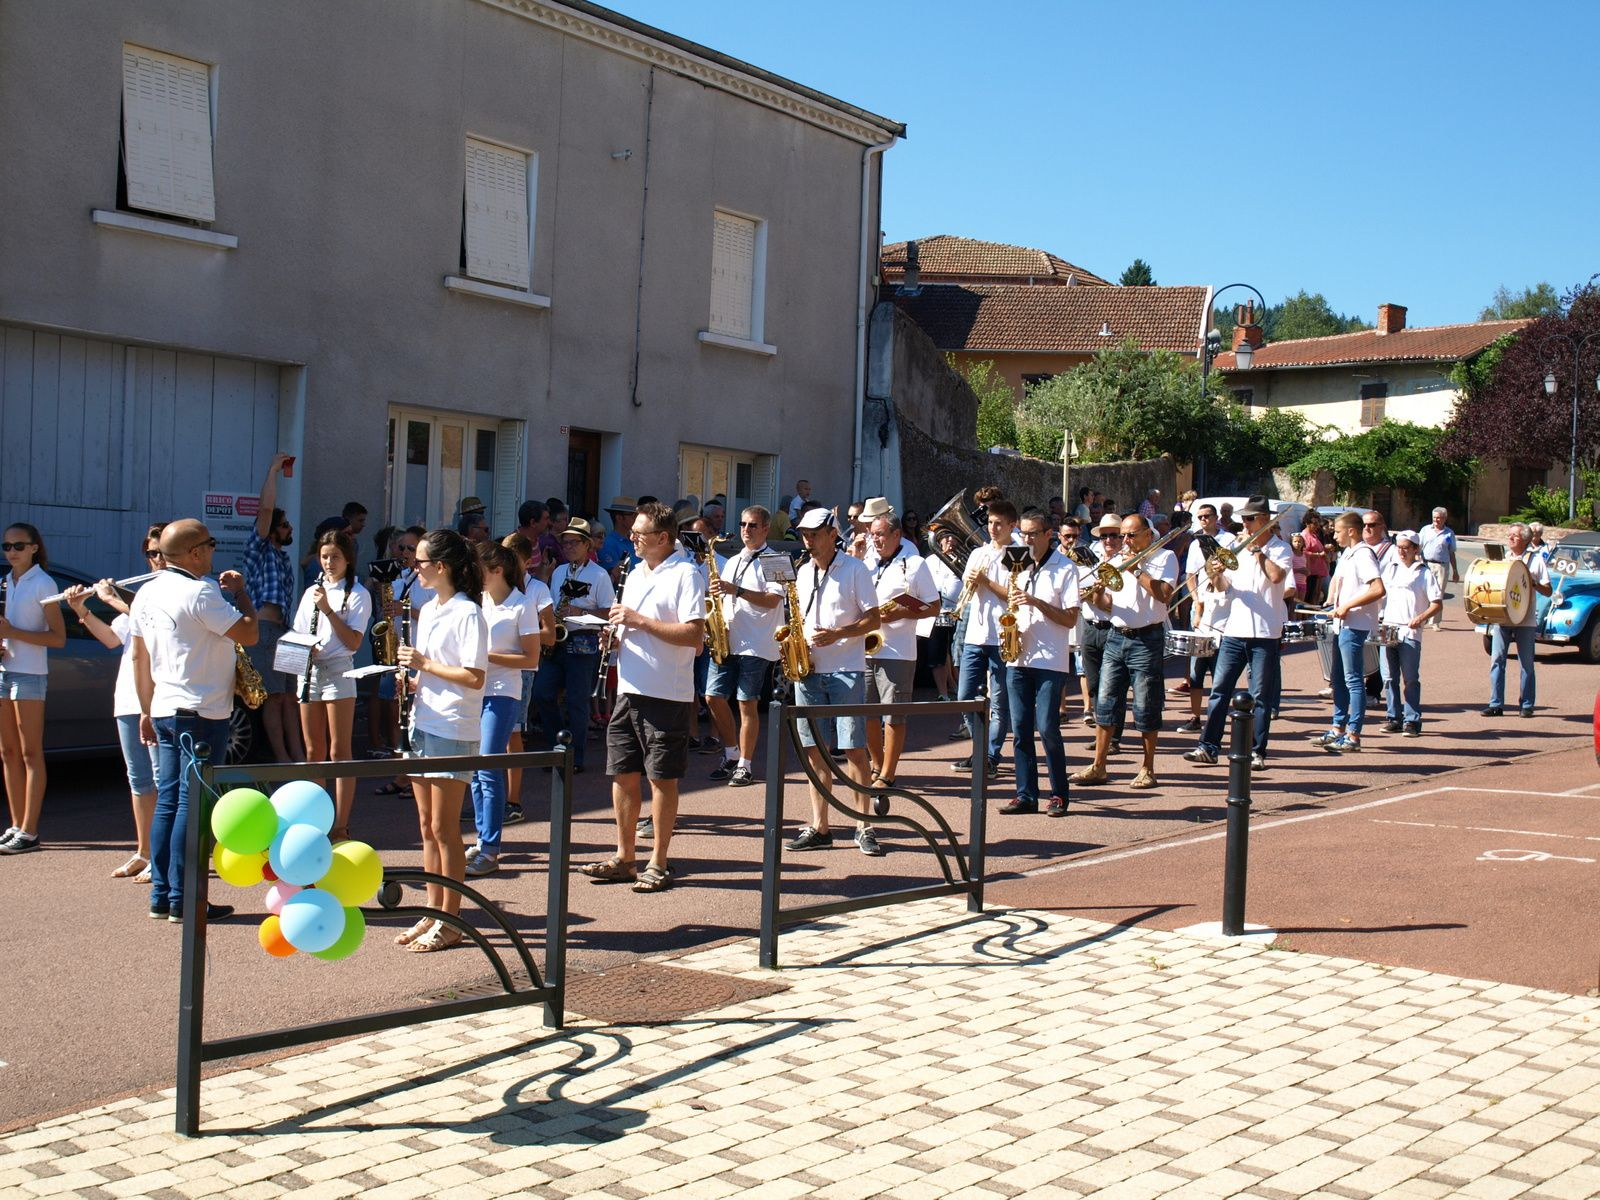 Fête des classes 2016 à Saint André